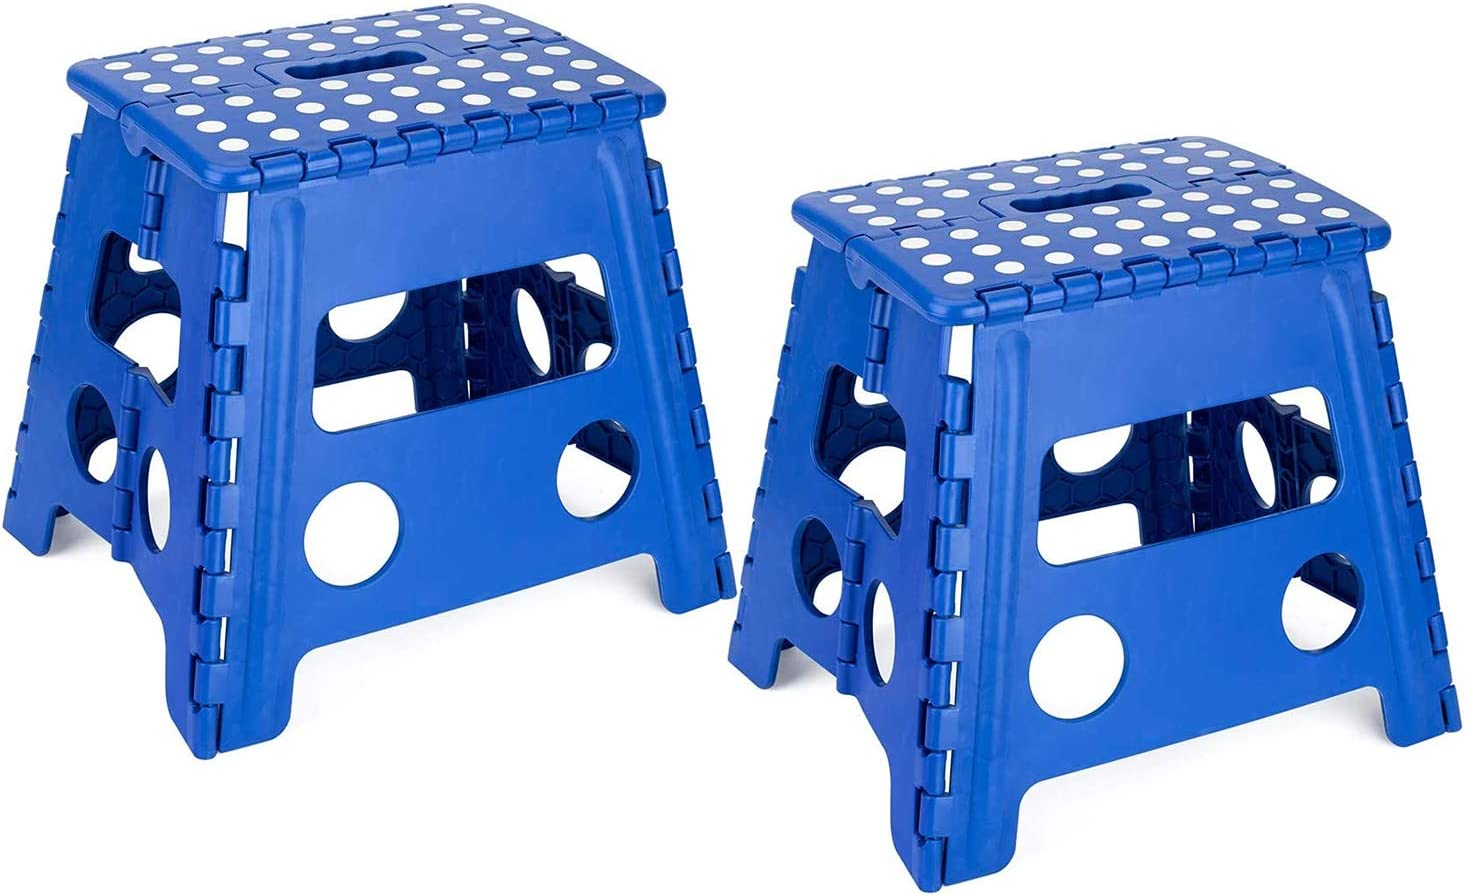 Acko Folding Step Stool - 13 inch Height Premium Heavy Duty Foldable Stool for Kids & Adults, Kitchen Garden Bathroom Stepping Stool (Blue-2 Packs)